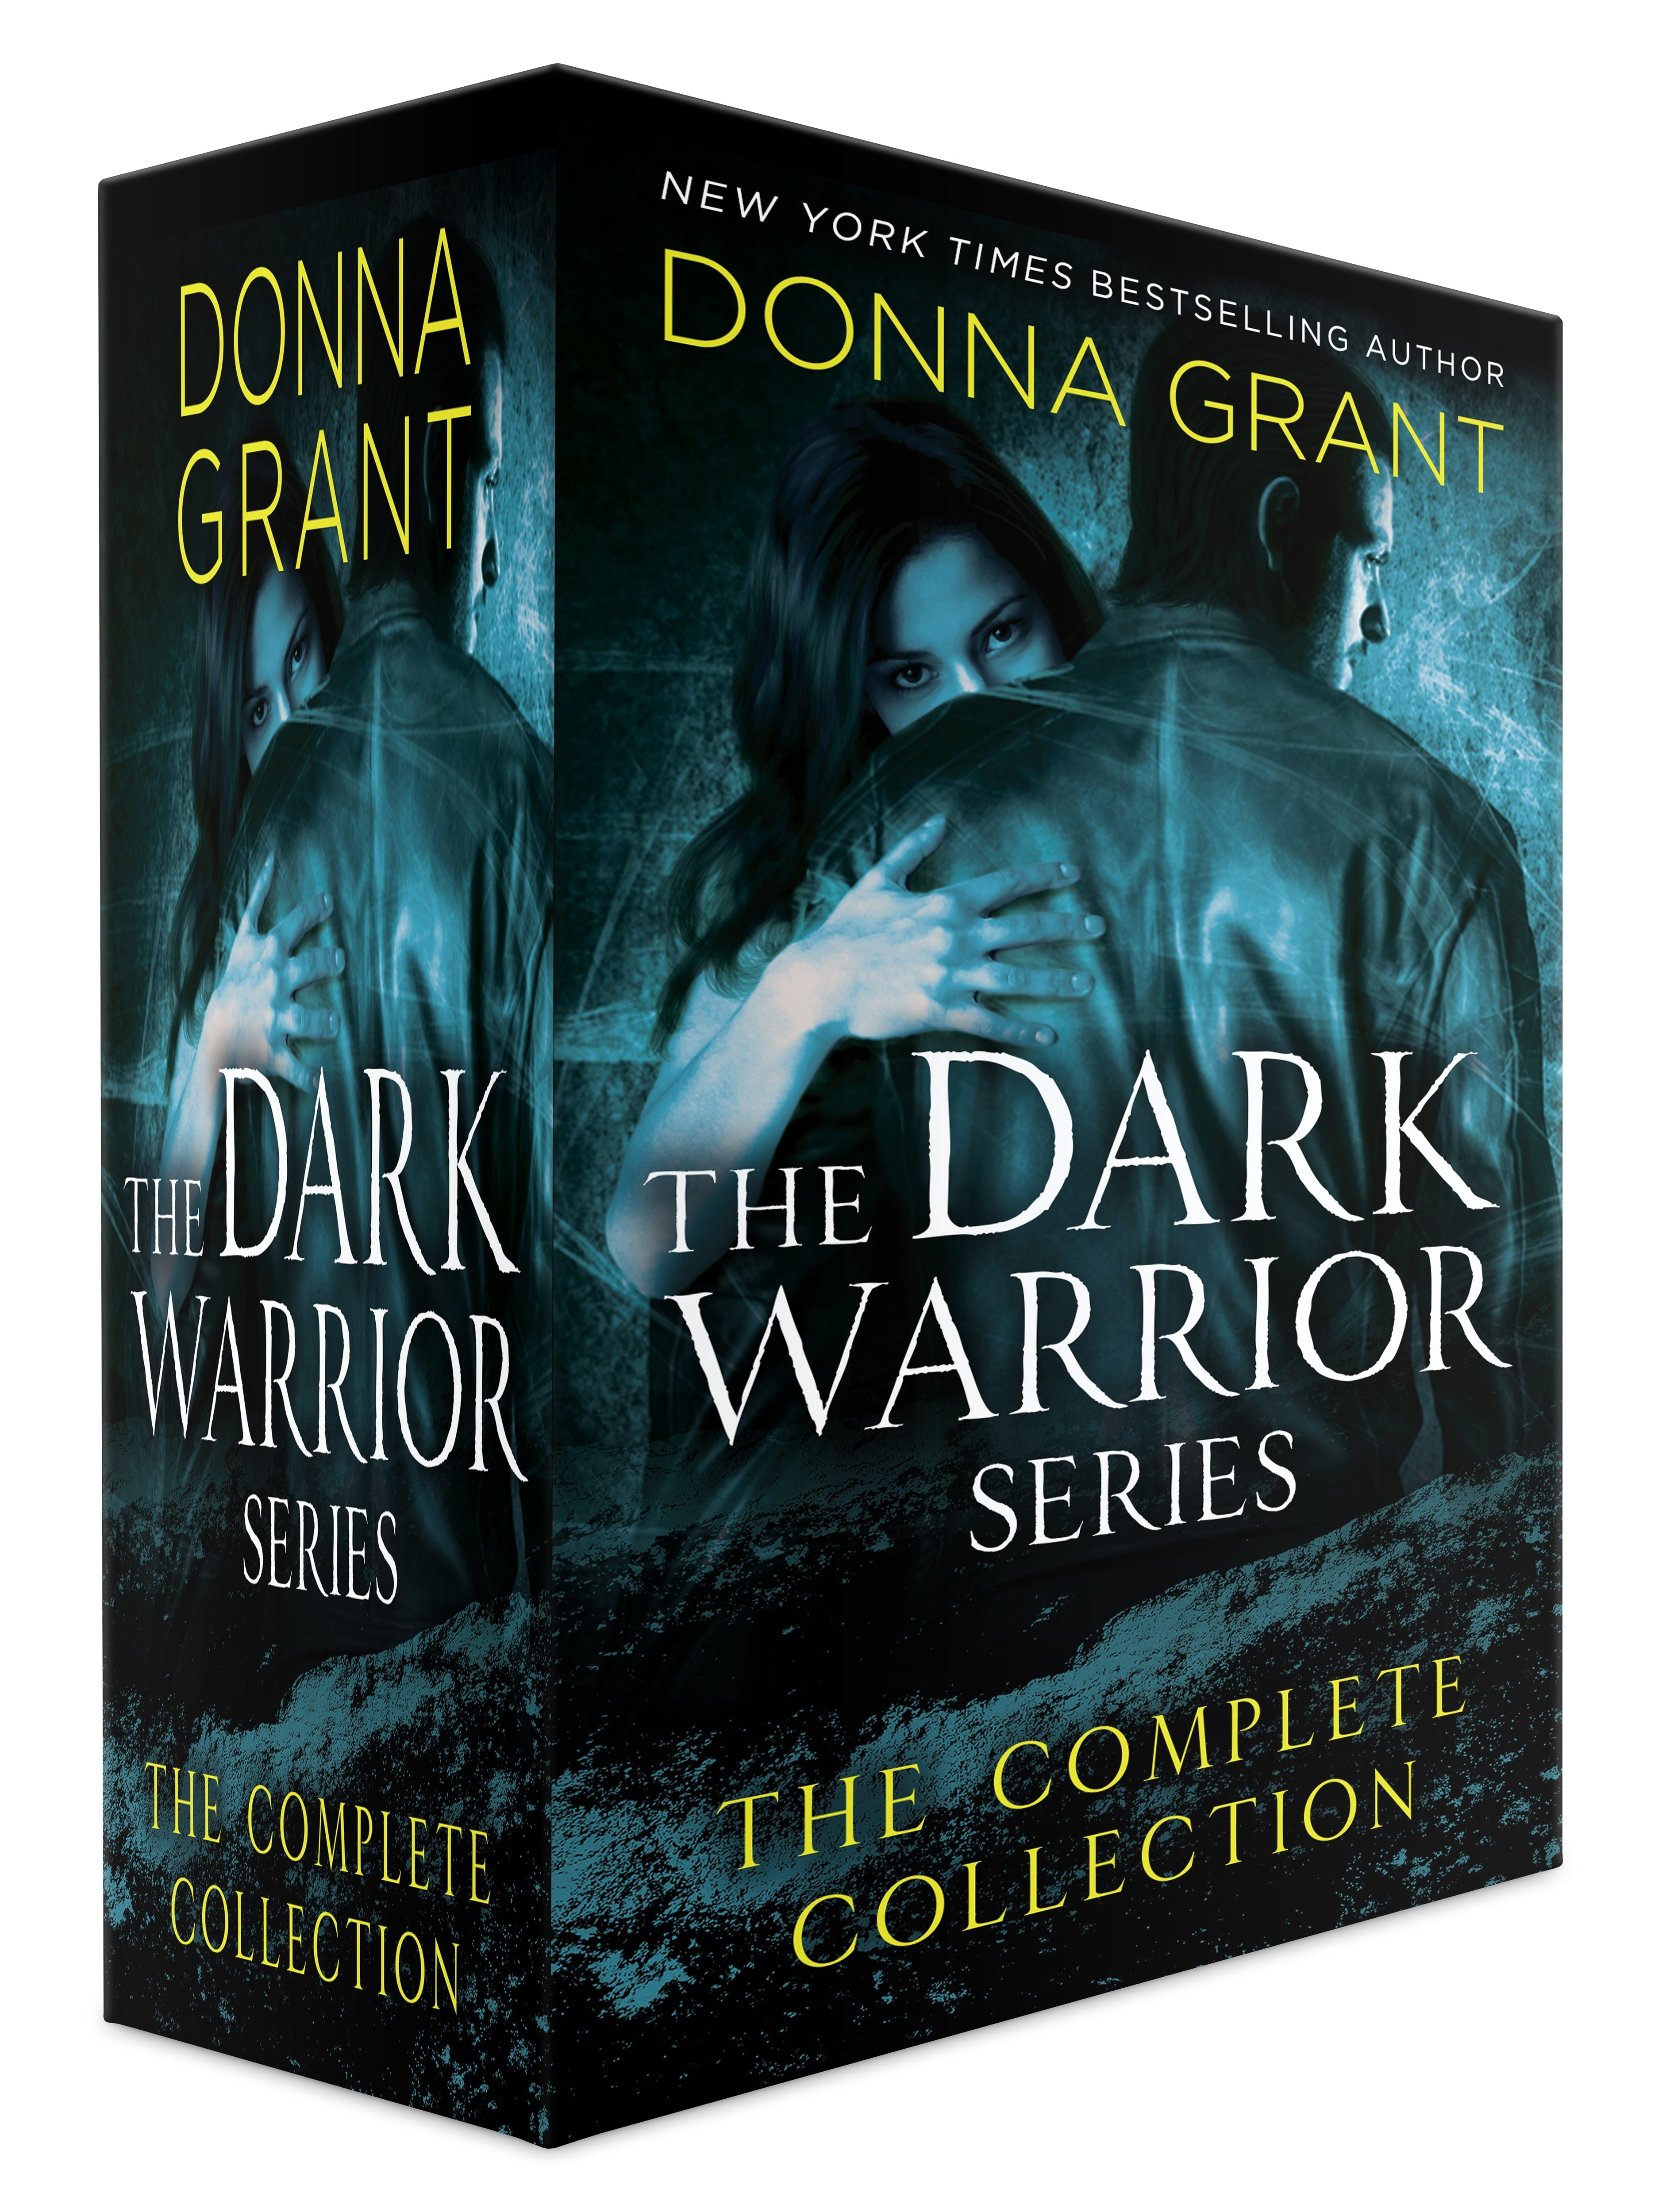 Image of The Dark Warrior Series, The Complete Collection